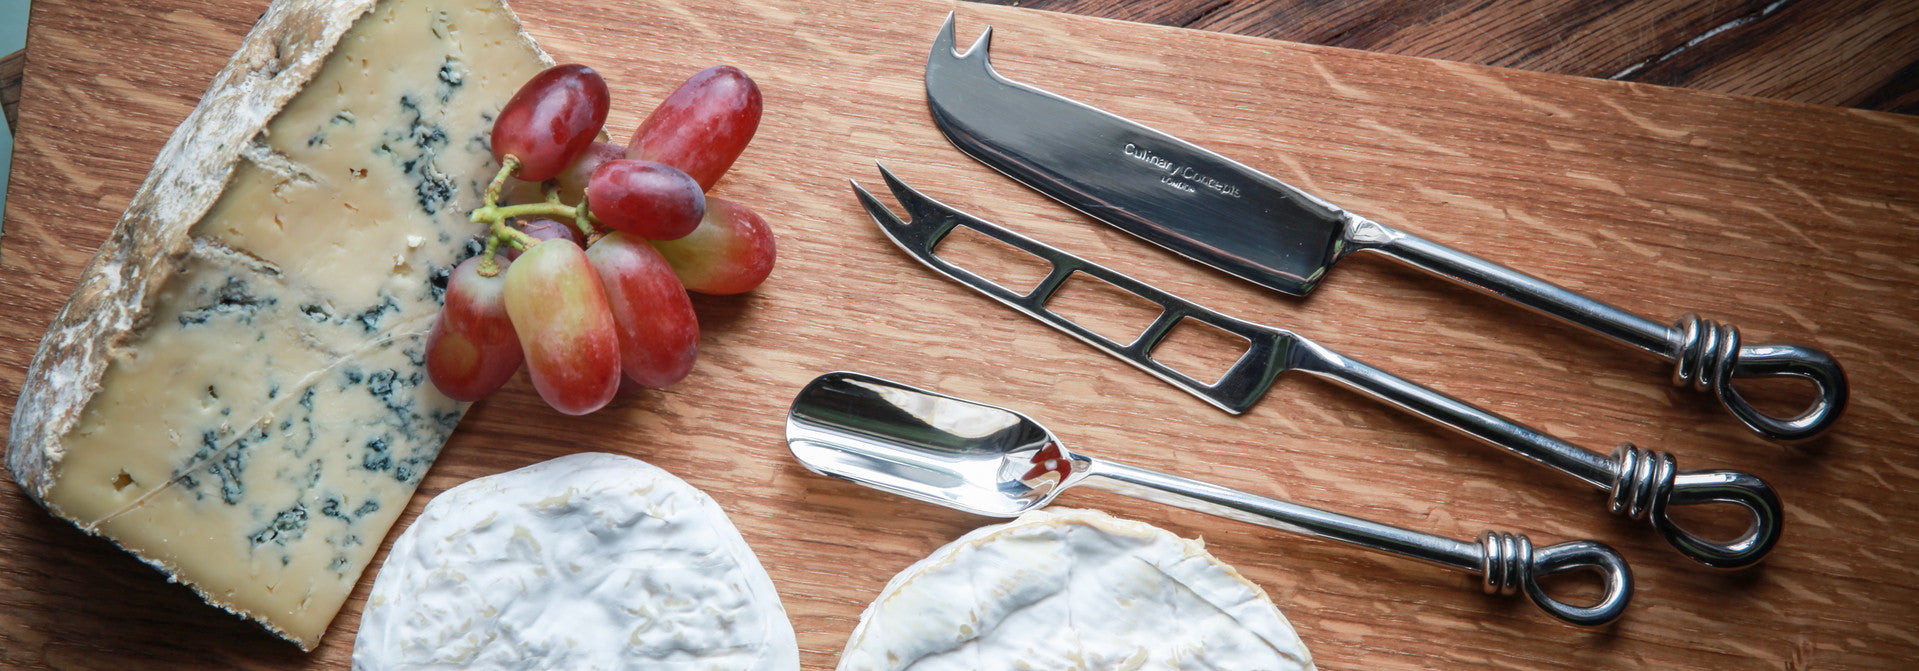 dining cheese accessories tableware cheese knives